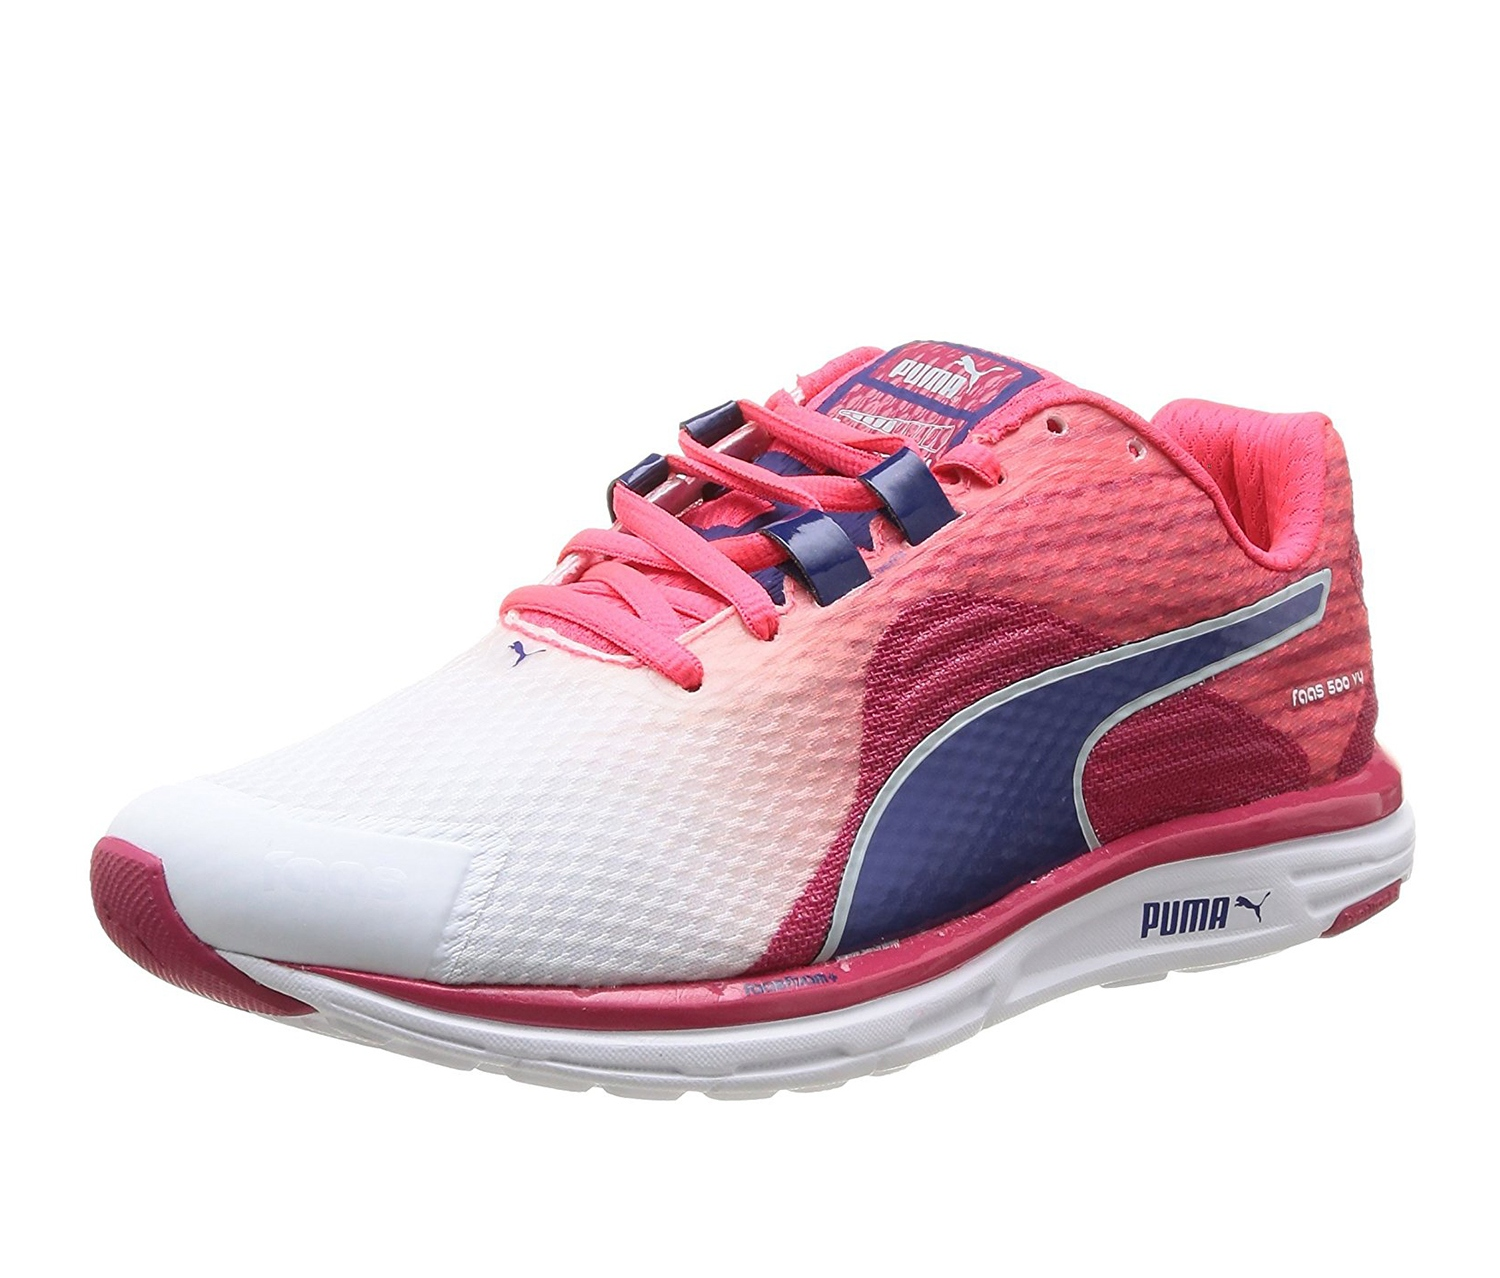 Shoes V4 Running Brands Faas Puma whitepink 500 For Less xnSIHw7